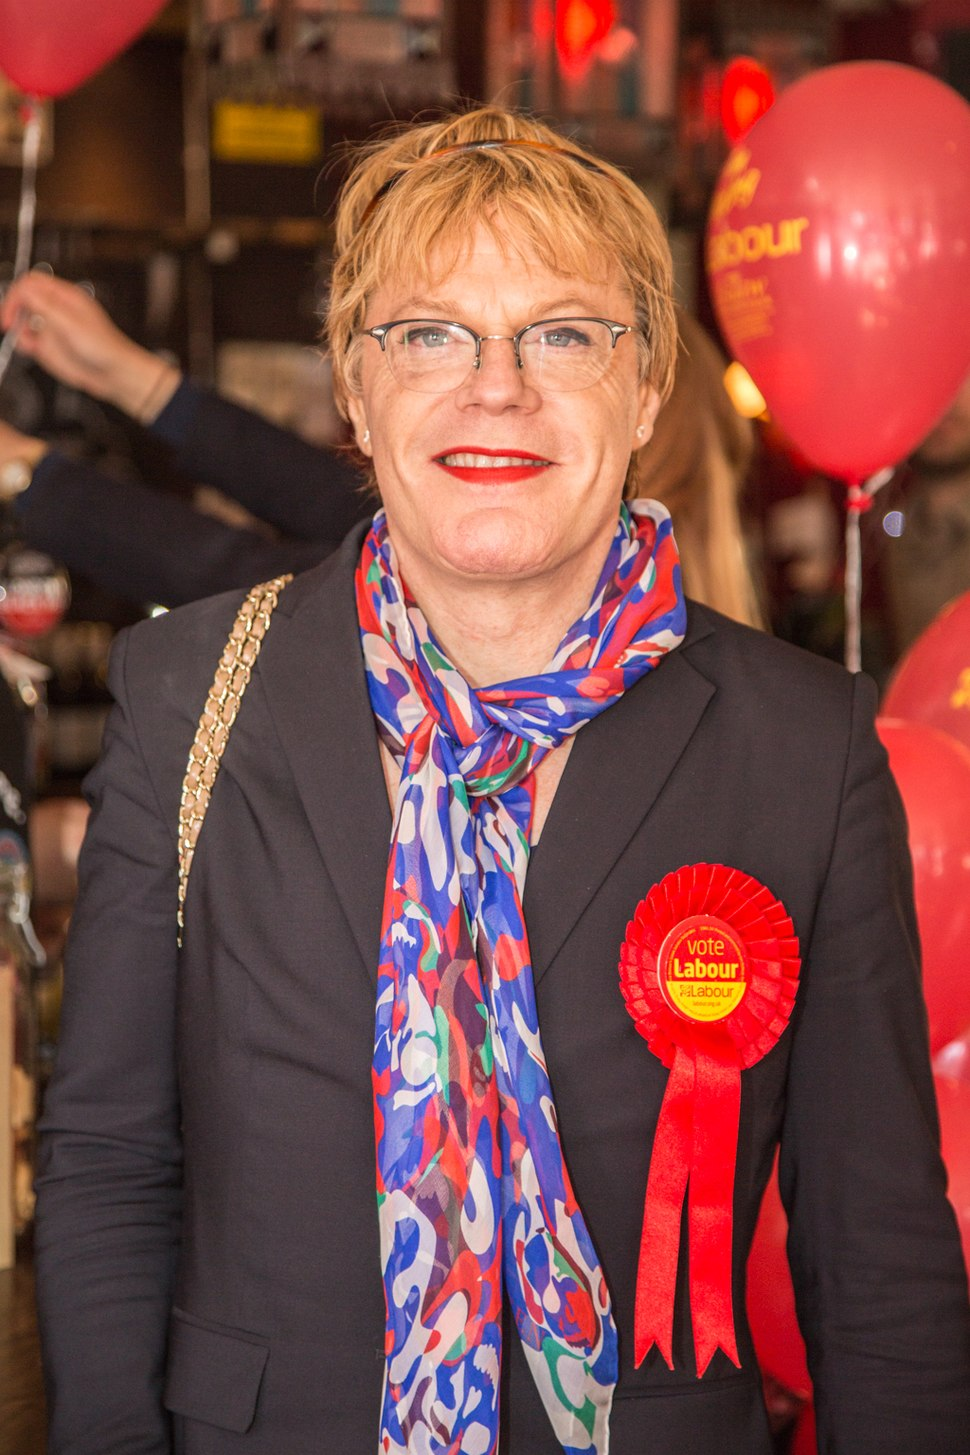 Eddie Izzard comes to Crouch End